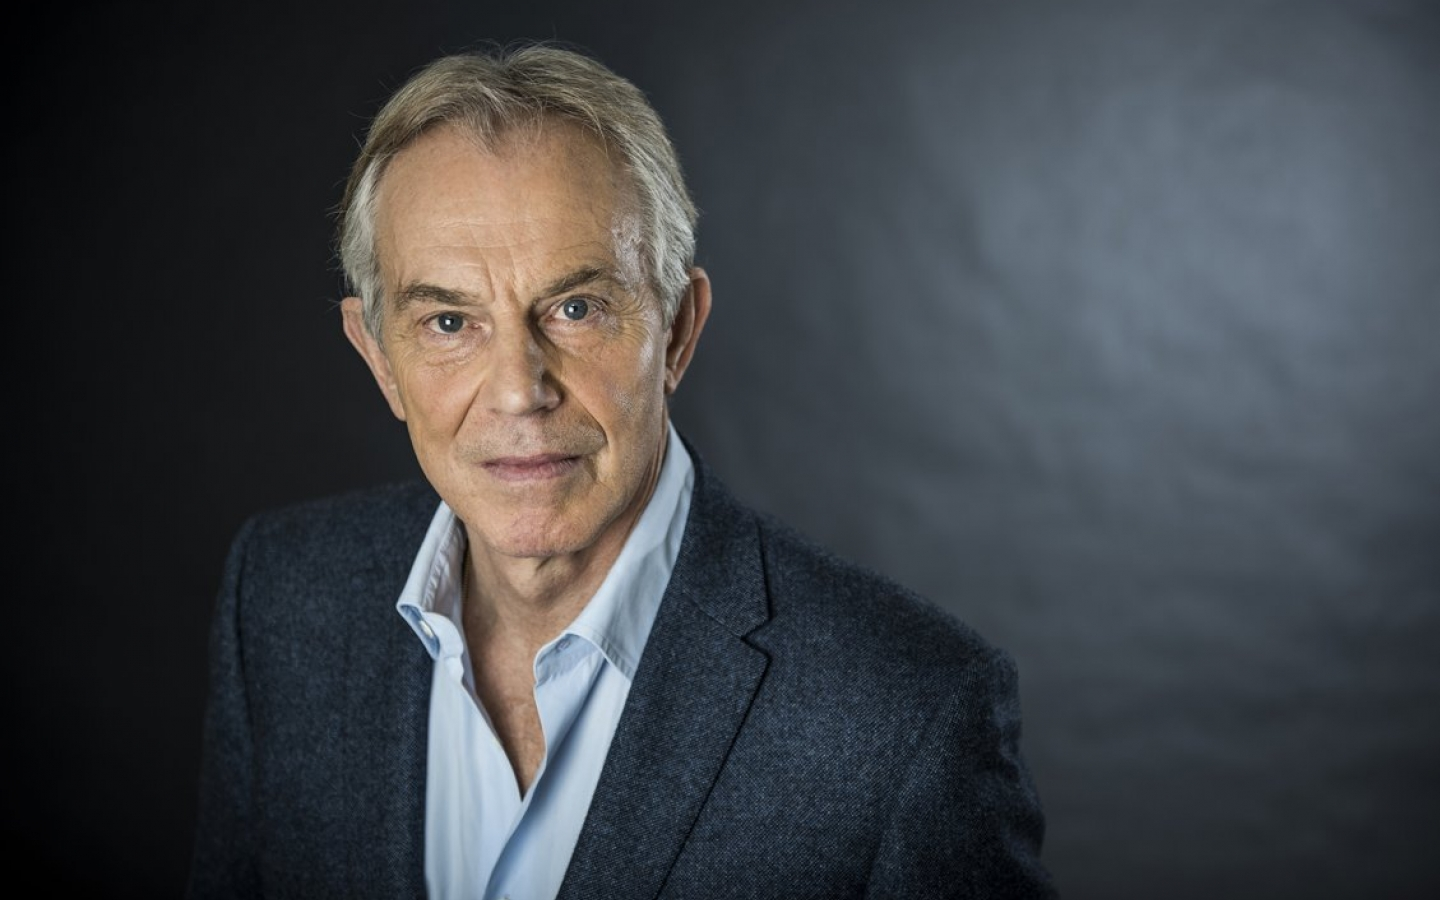 tony blair - photo #27